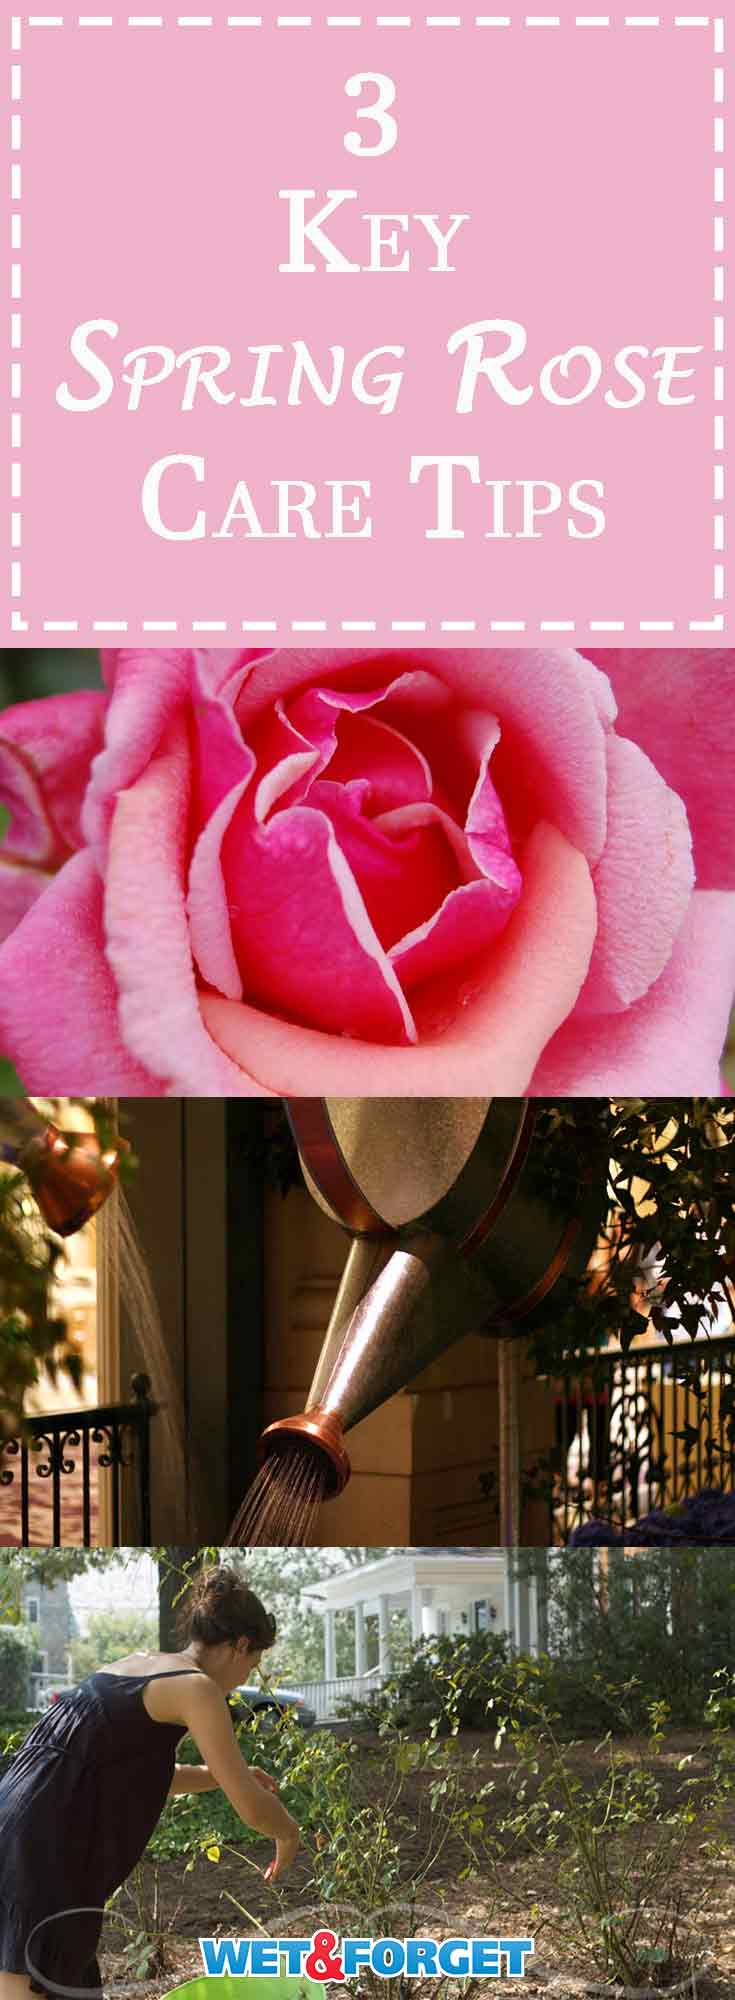 Roses are one of America's favorite flowers, and for good reason. Their distinctive fragrance and velvety blooms make them one of the loveliest flowers in nature. Read on to learn 3 essential things that you can do right now to give your roses a boost, so you and your family can enjoy lots of gorgeous blossoms this year!